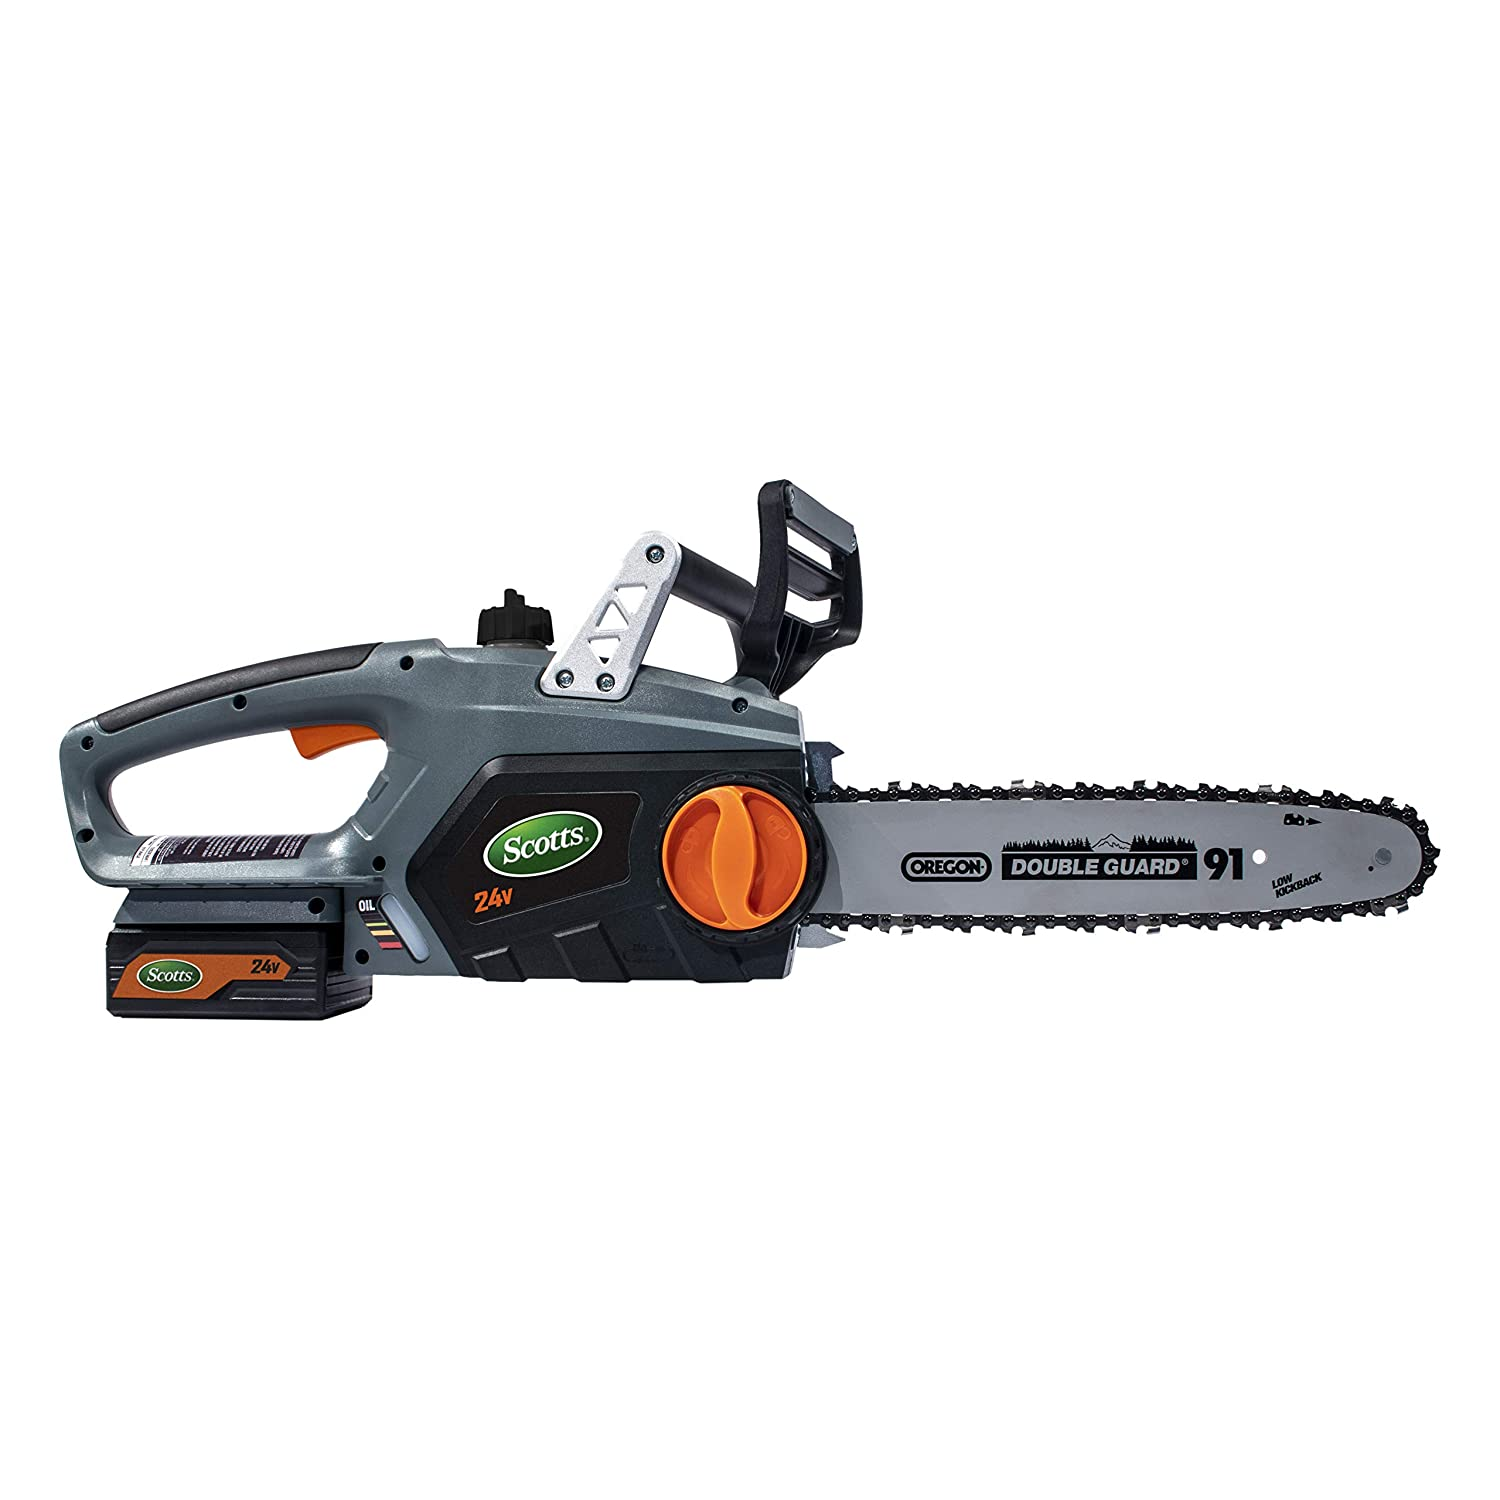 Scotts Outdoor Power Tools LCS31224S featured image 4